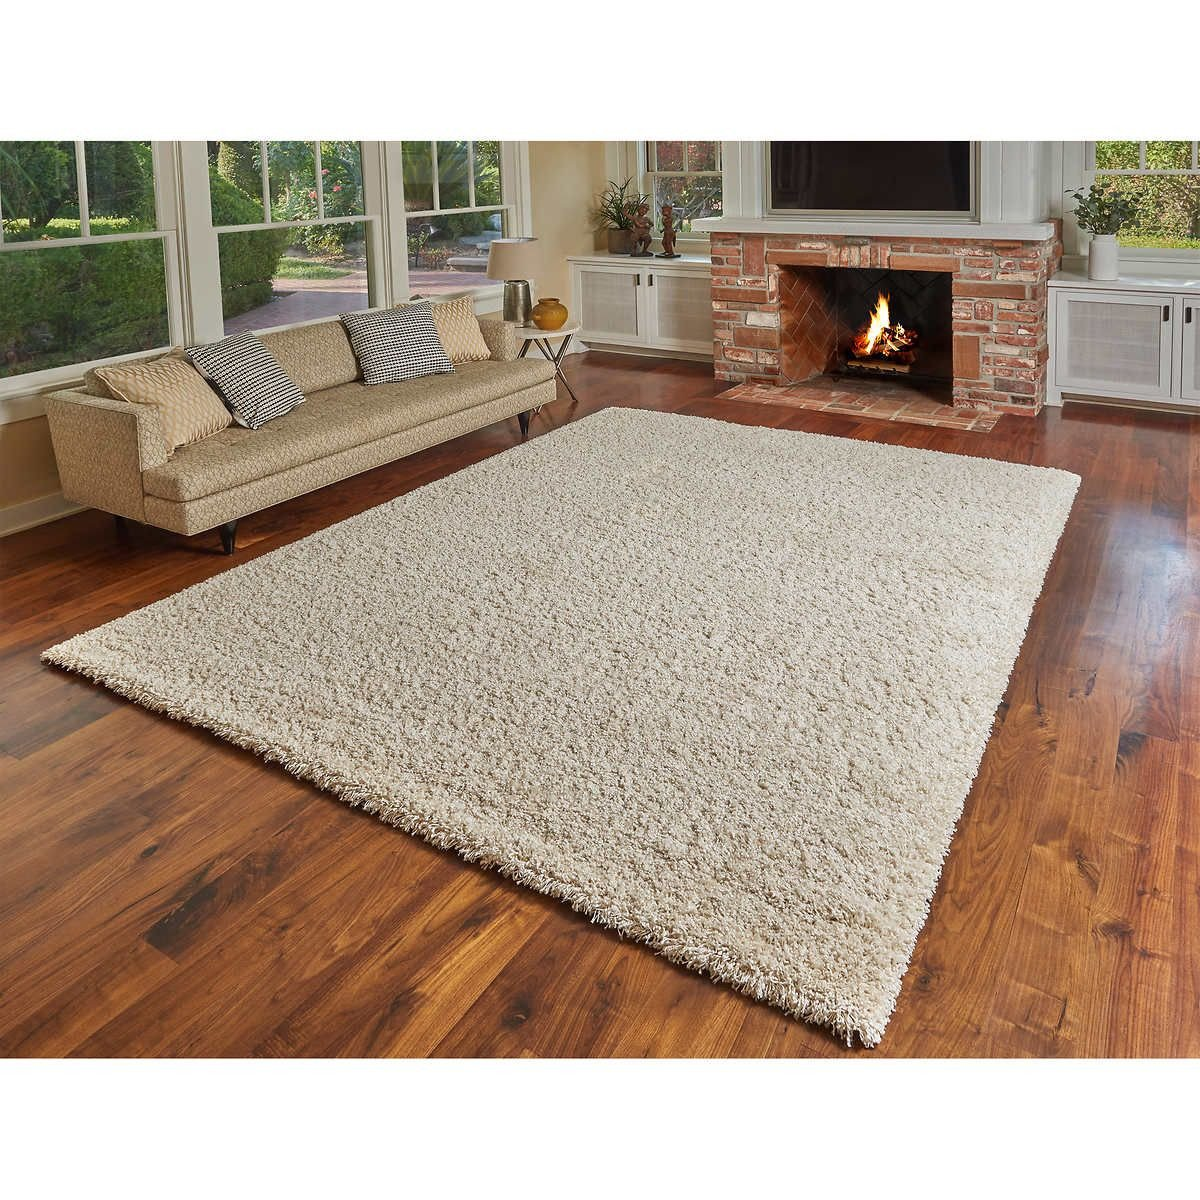 Girls Bedroom area Rugs Fresh Shawneens Rug 8x10 9 5 X13 In Other Colors